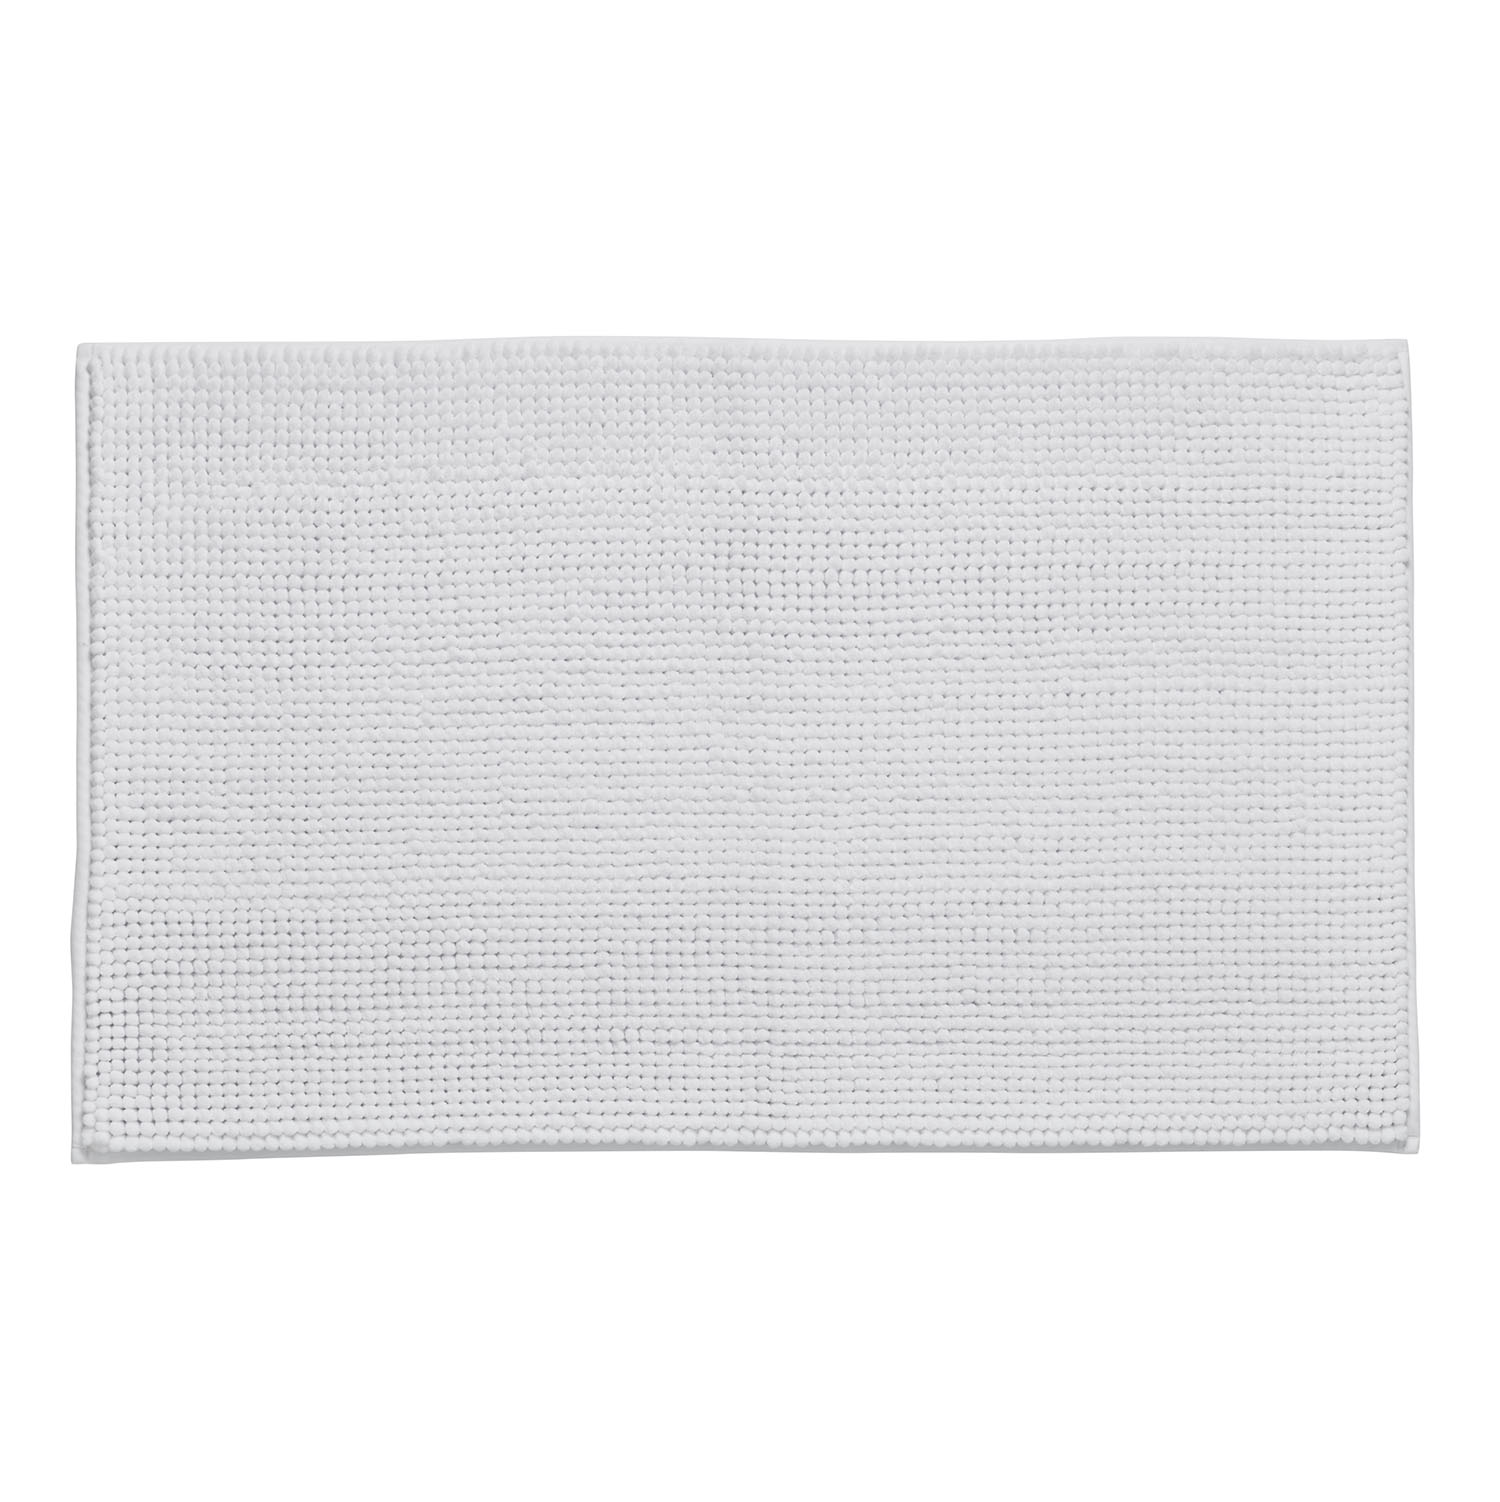 Catherine Lansfield Bobble Bath Mat - White